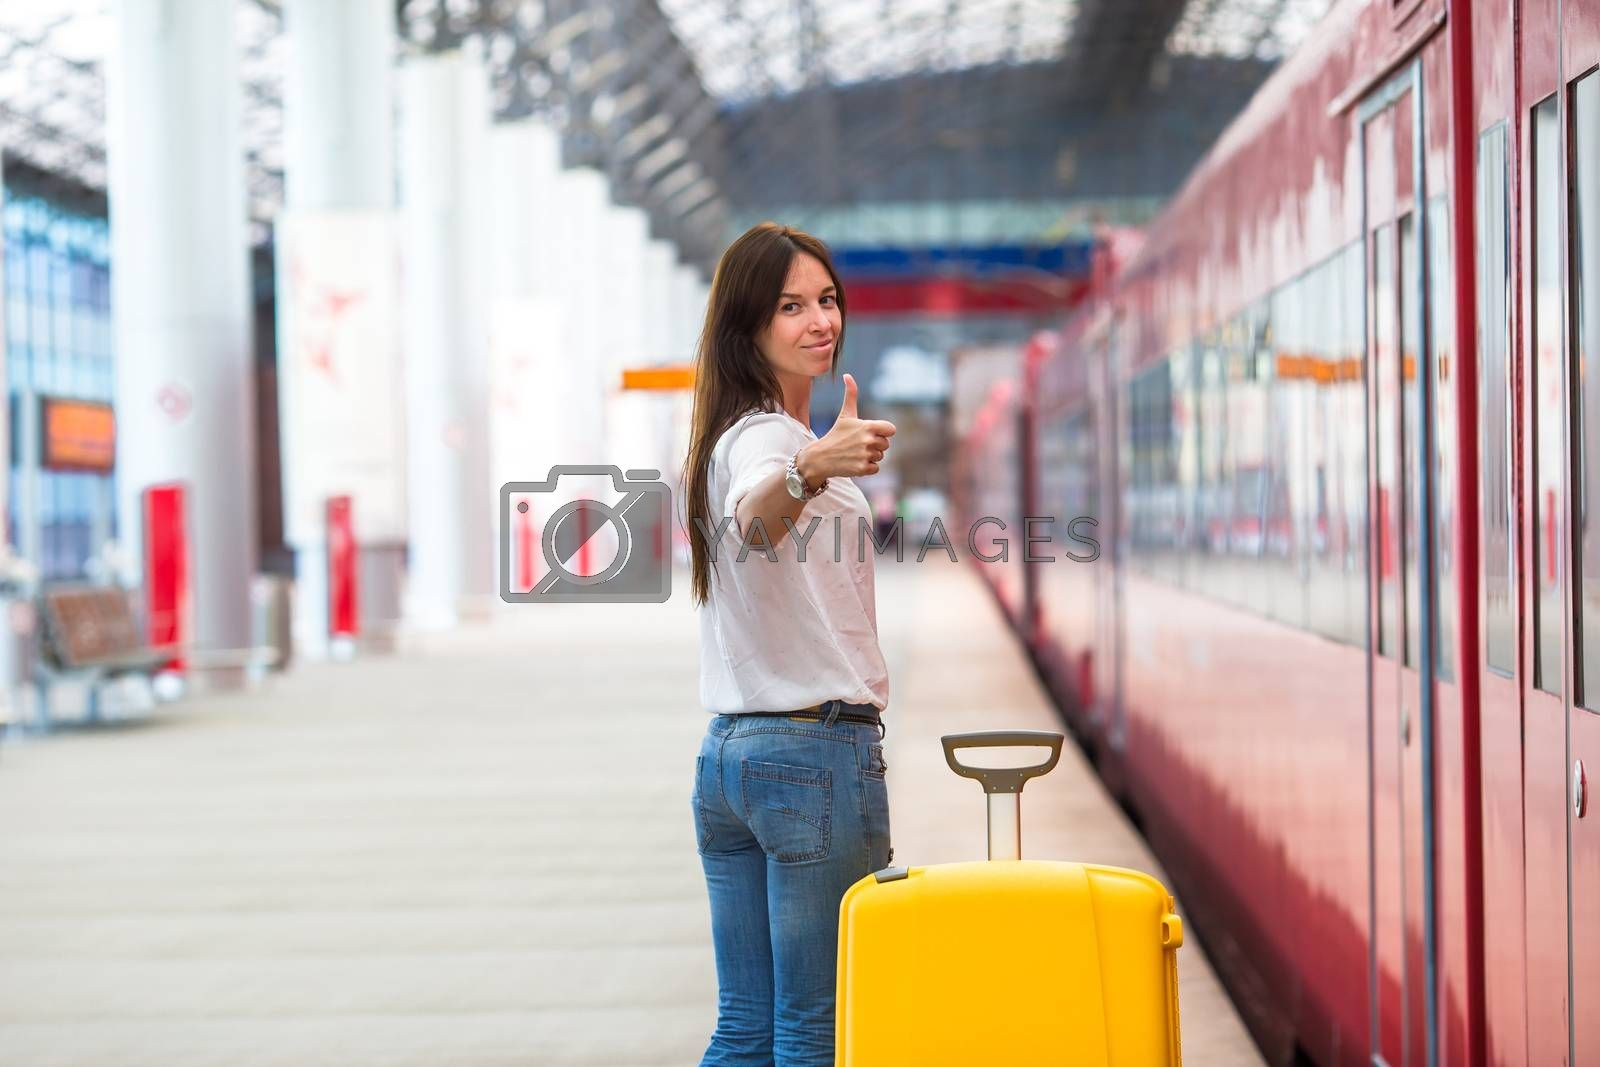 Young woman with luggage on the platform waiting for aeroexpress